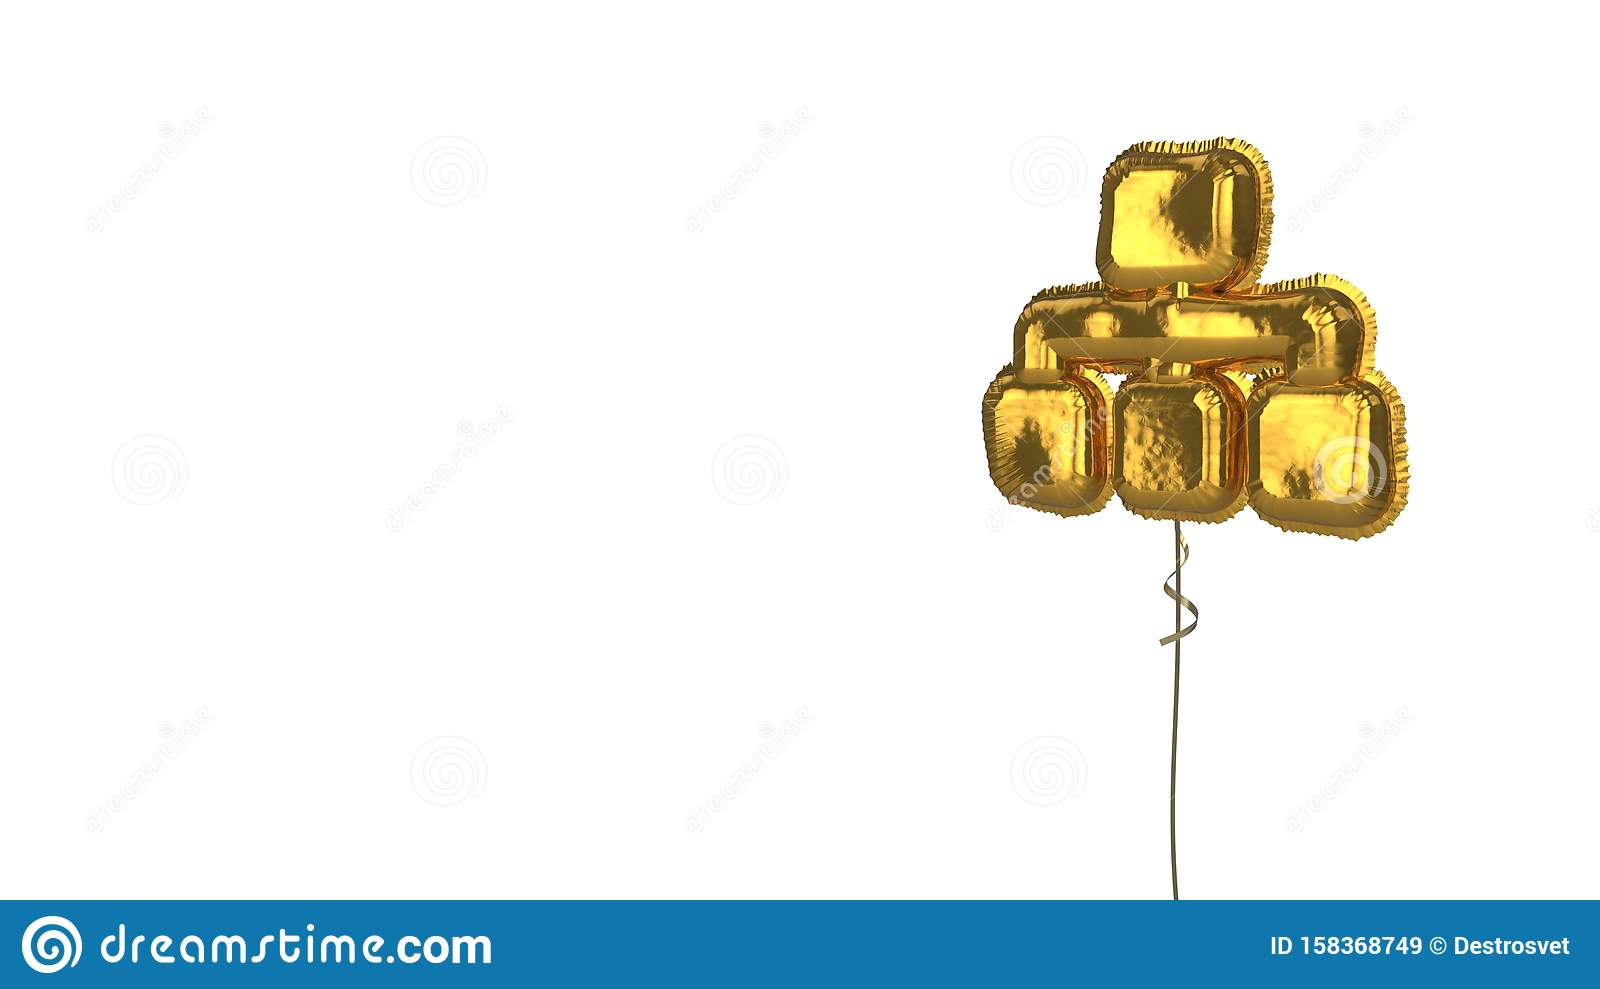 gold balloon symbol of sitemap on white background